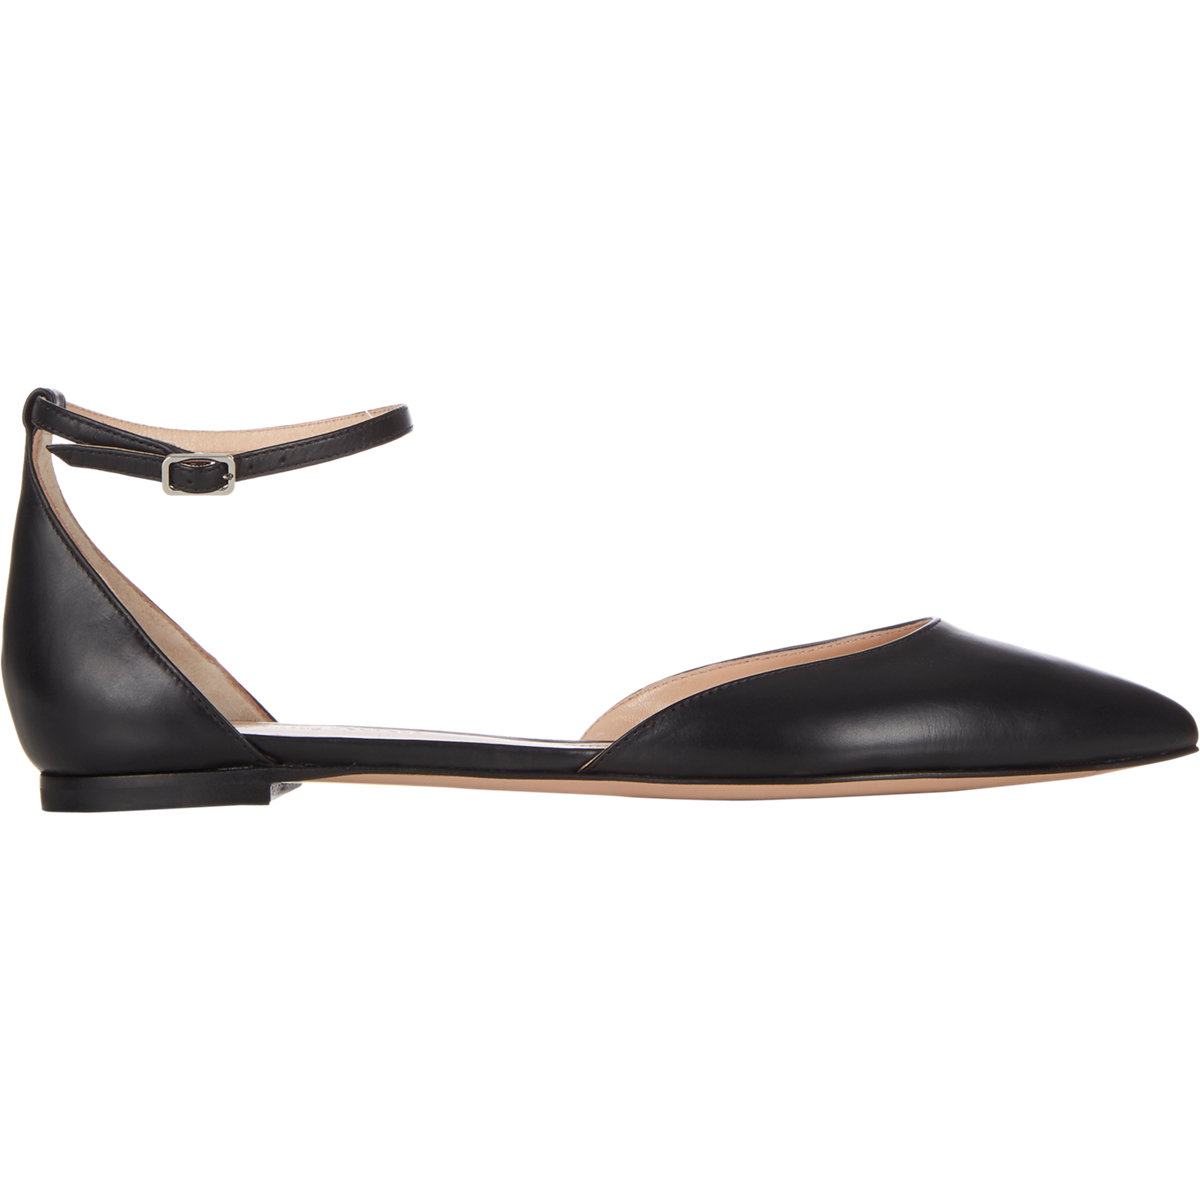 free shipping clearance store Gianvito Rossi Metallic d'Orsay Flats discount 2014 new free shipping very cheap cheap sale countdown package JRcoqg